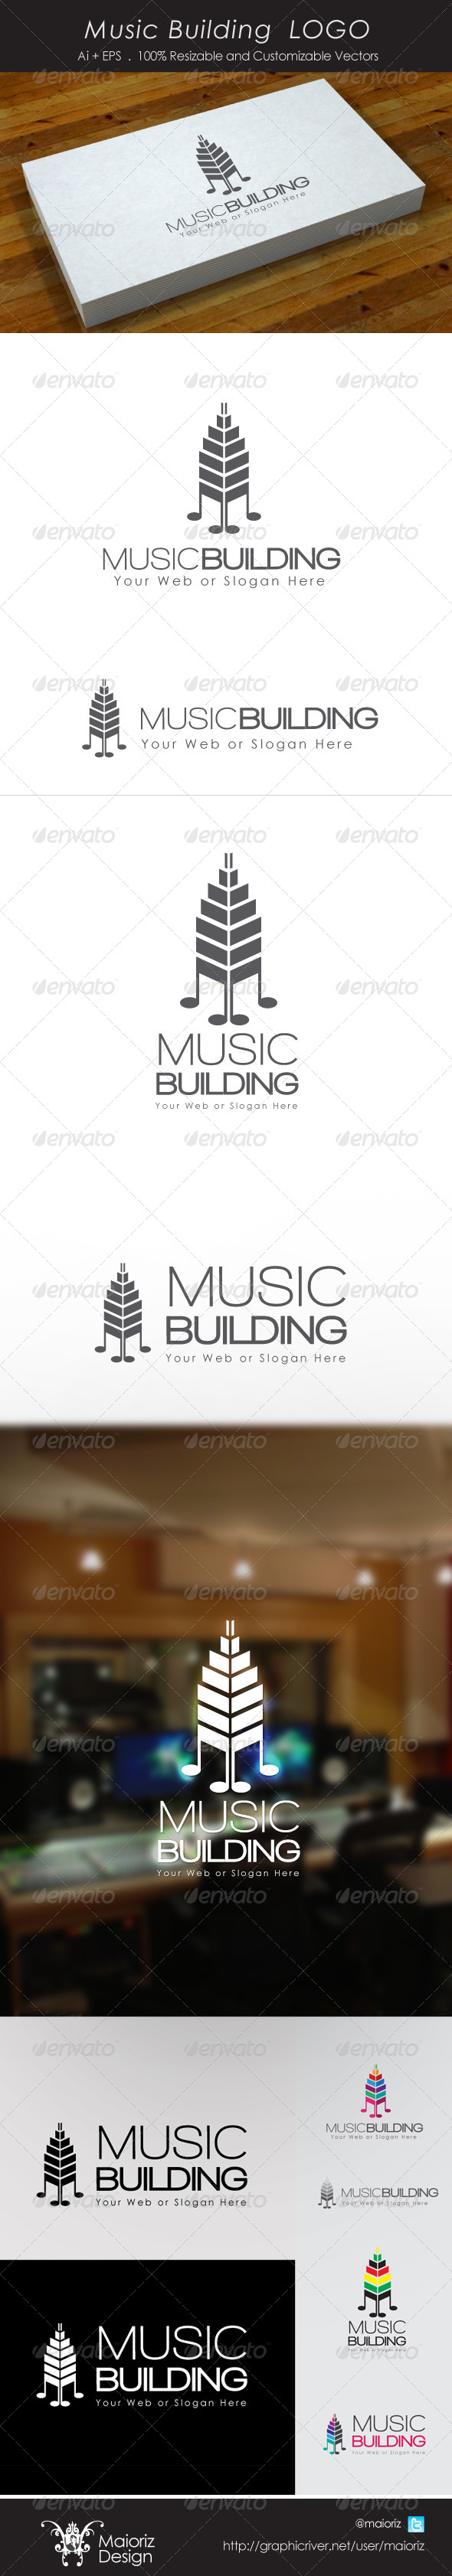 Music Building Logo - Buildings Logo Templates